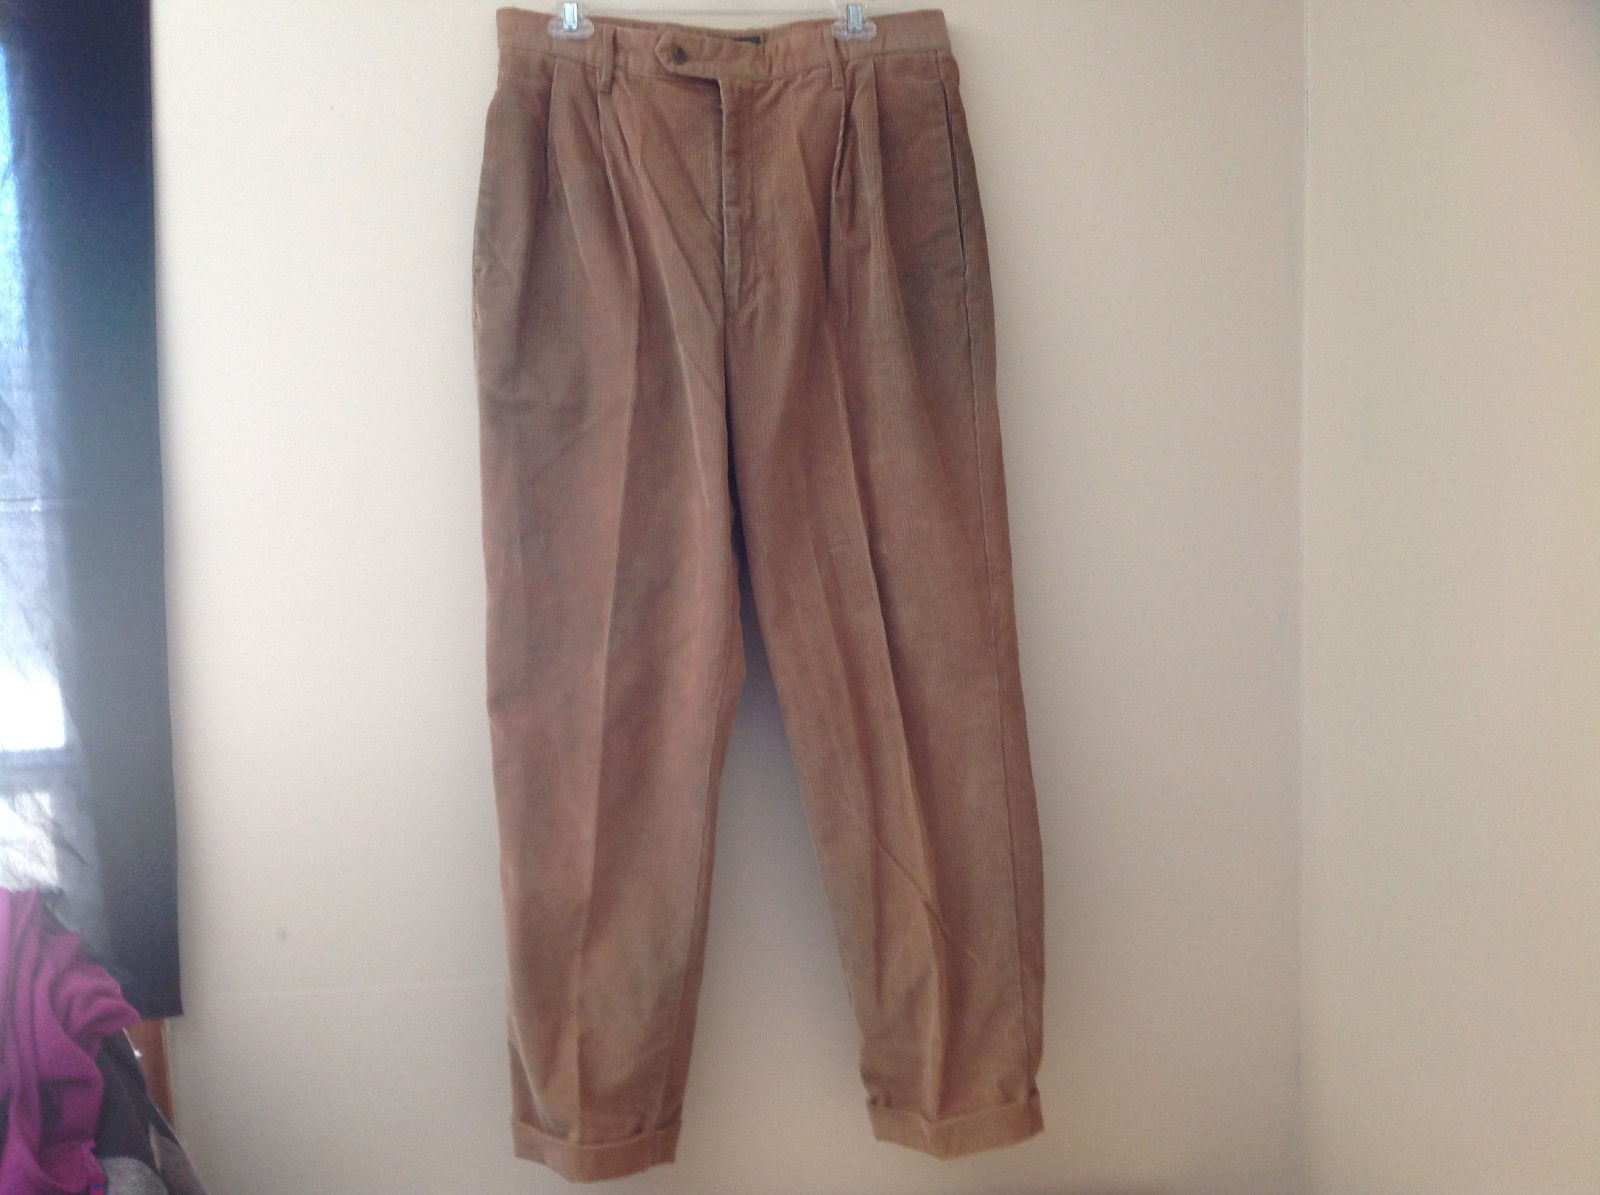 Brown Corduroy Pleated Dockers Dress Pants Cuffed Pant Legs Size 34 by 31